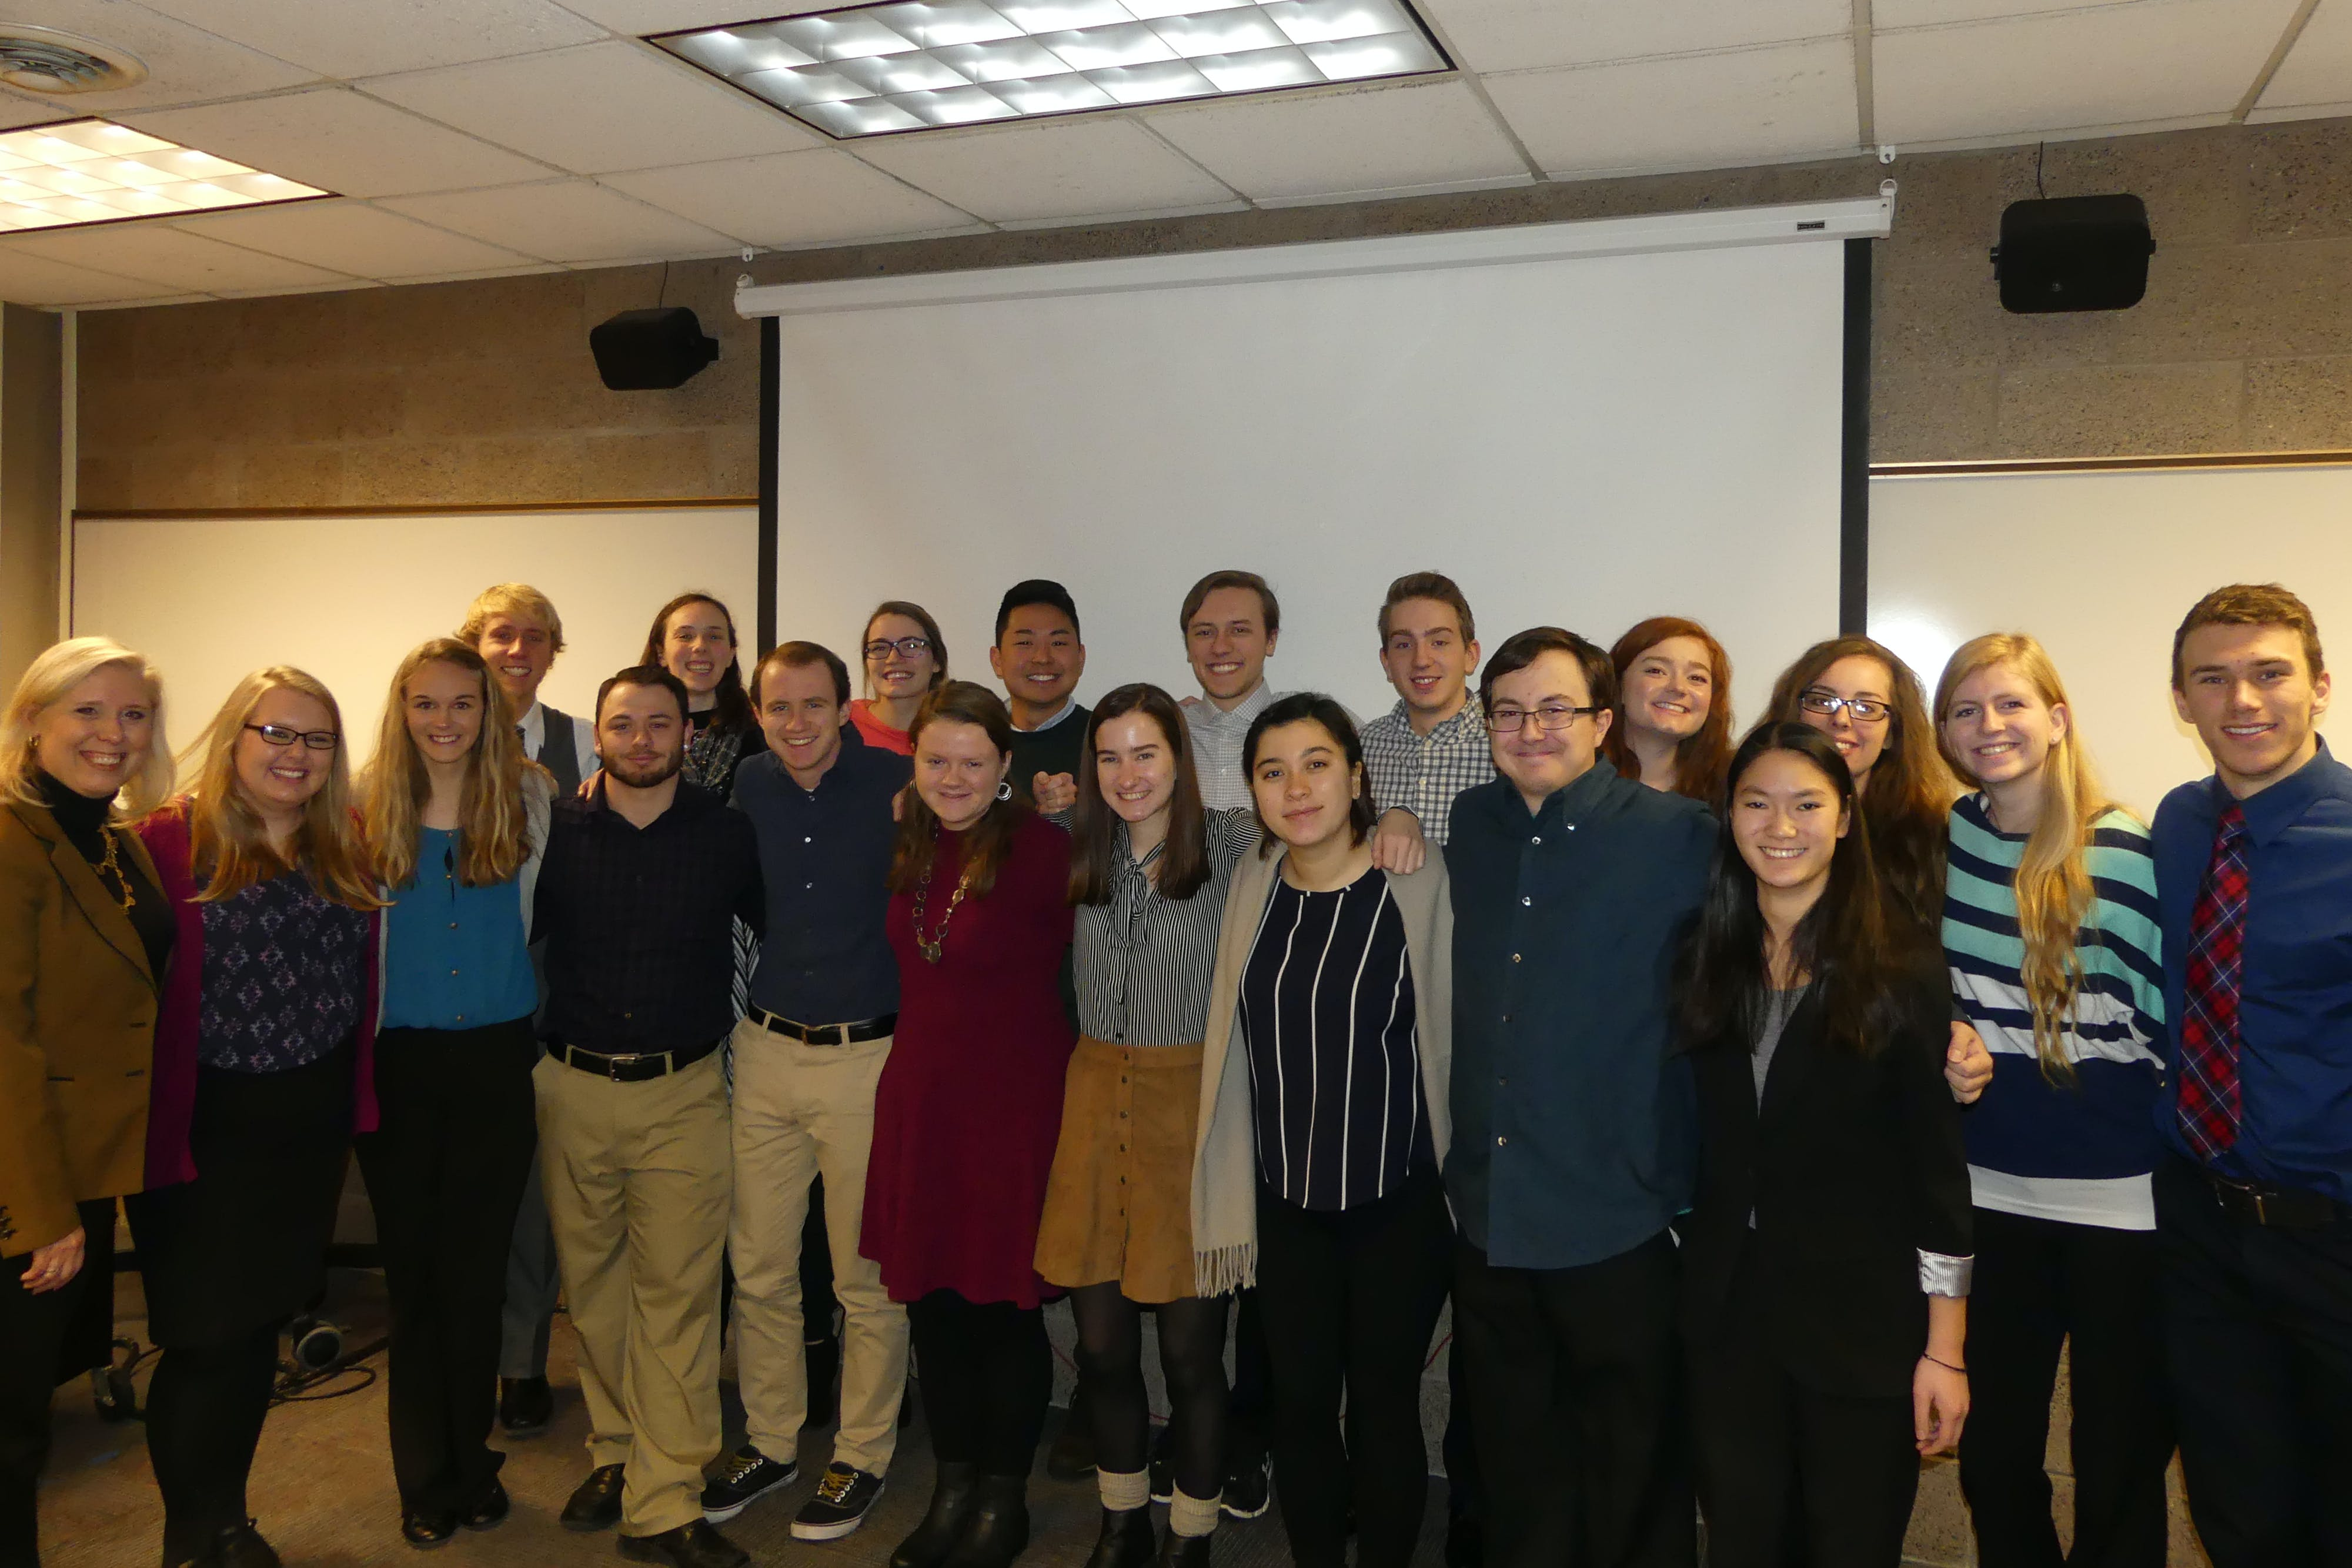 Students in Professor of Mathematics Patrice Conrath's Operations Research class worked with Minnesota nonprofits Feed My Starving Children and Venture to design a food packing plant in Nepal.